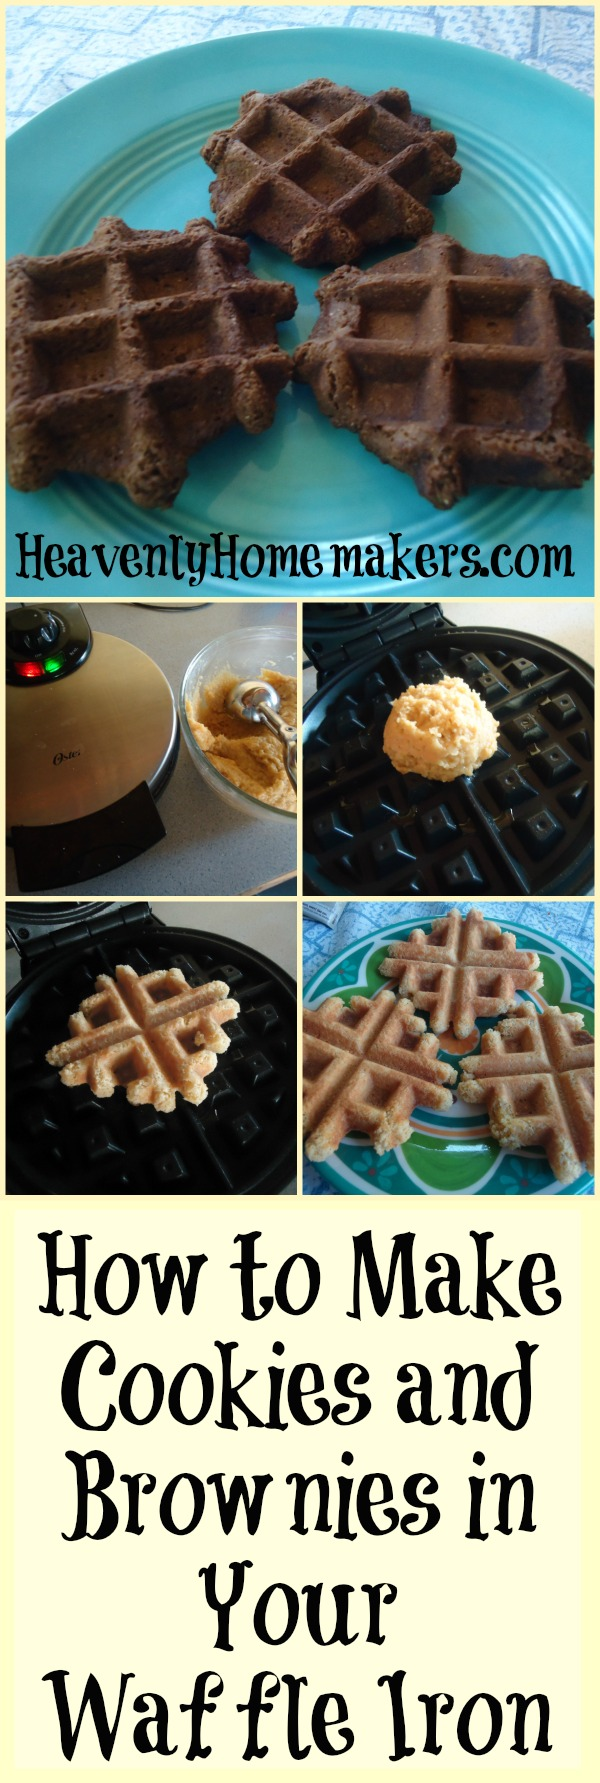 How to Make Cookies and Brownies in Your Waffle Iron